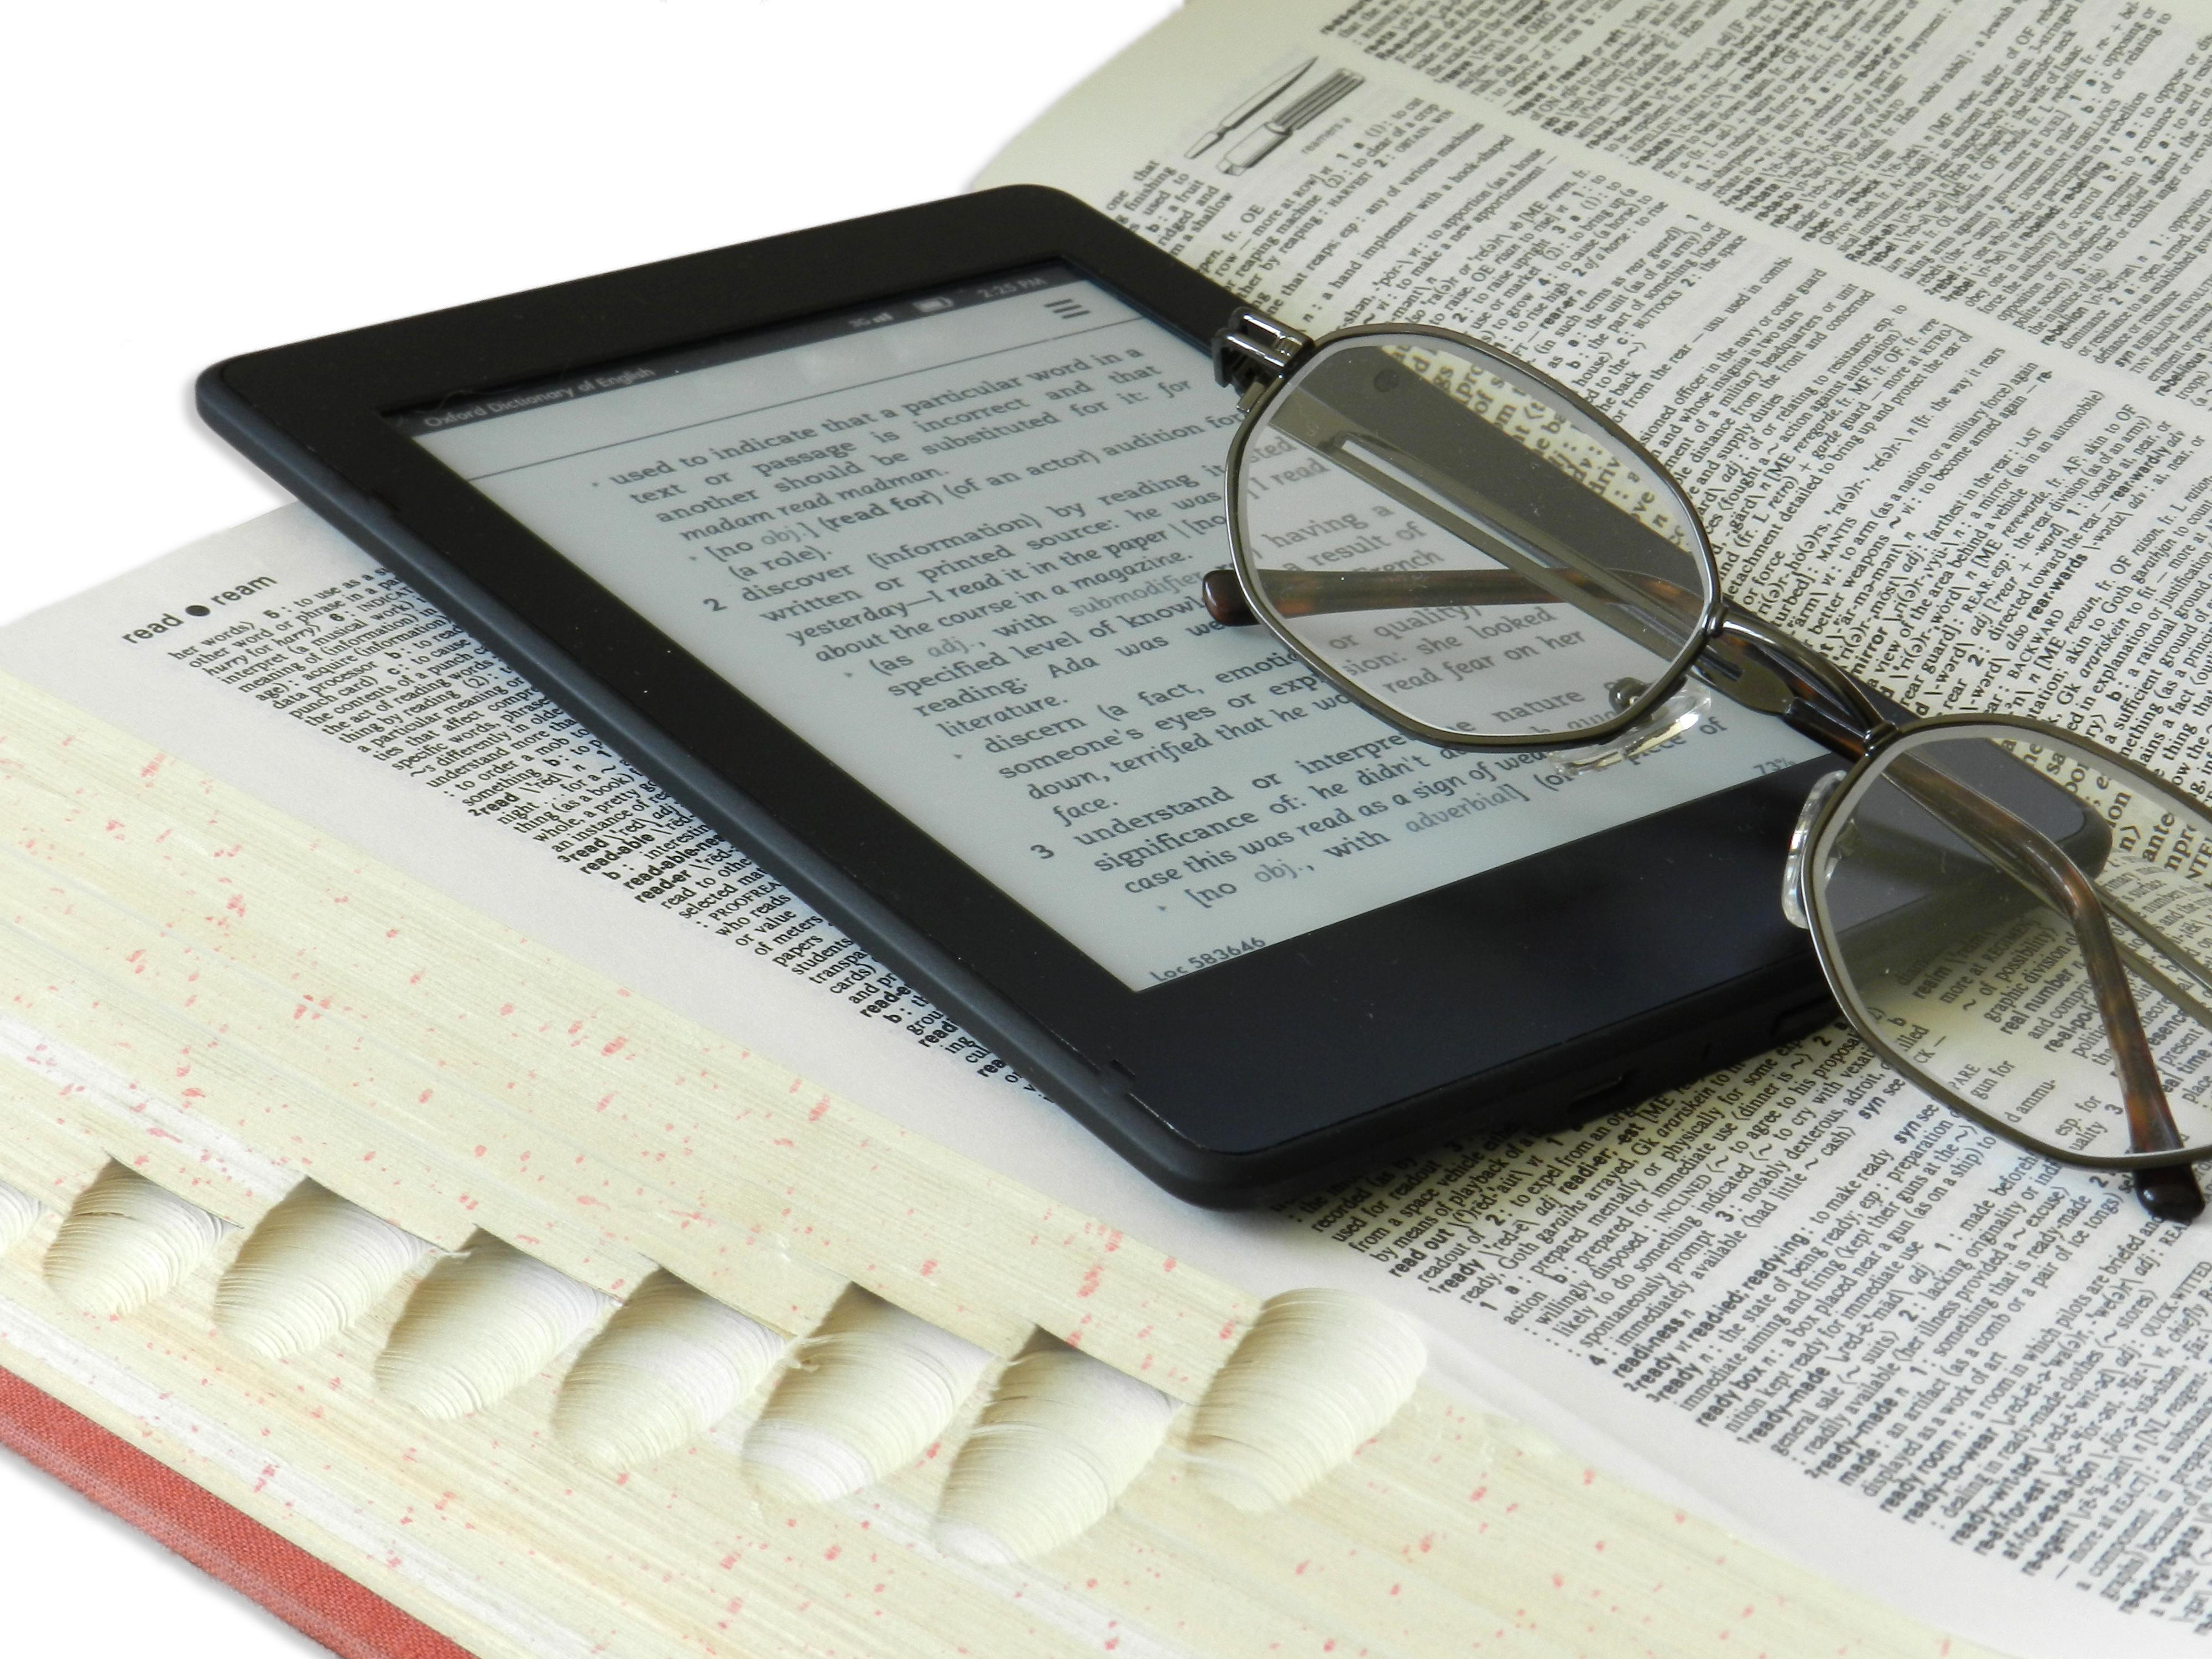 Kindle And Dictionary Editing And Proofreading